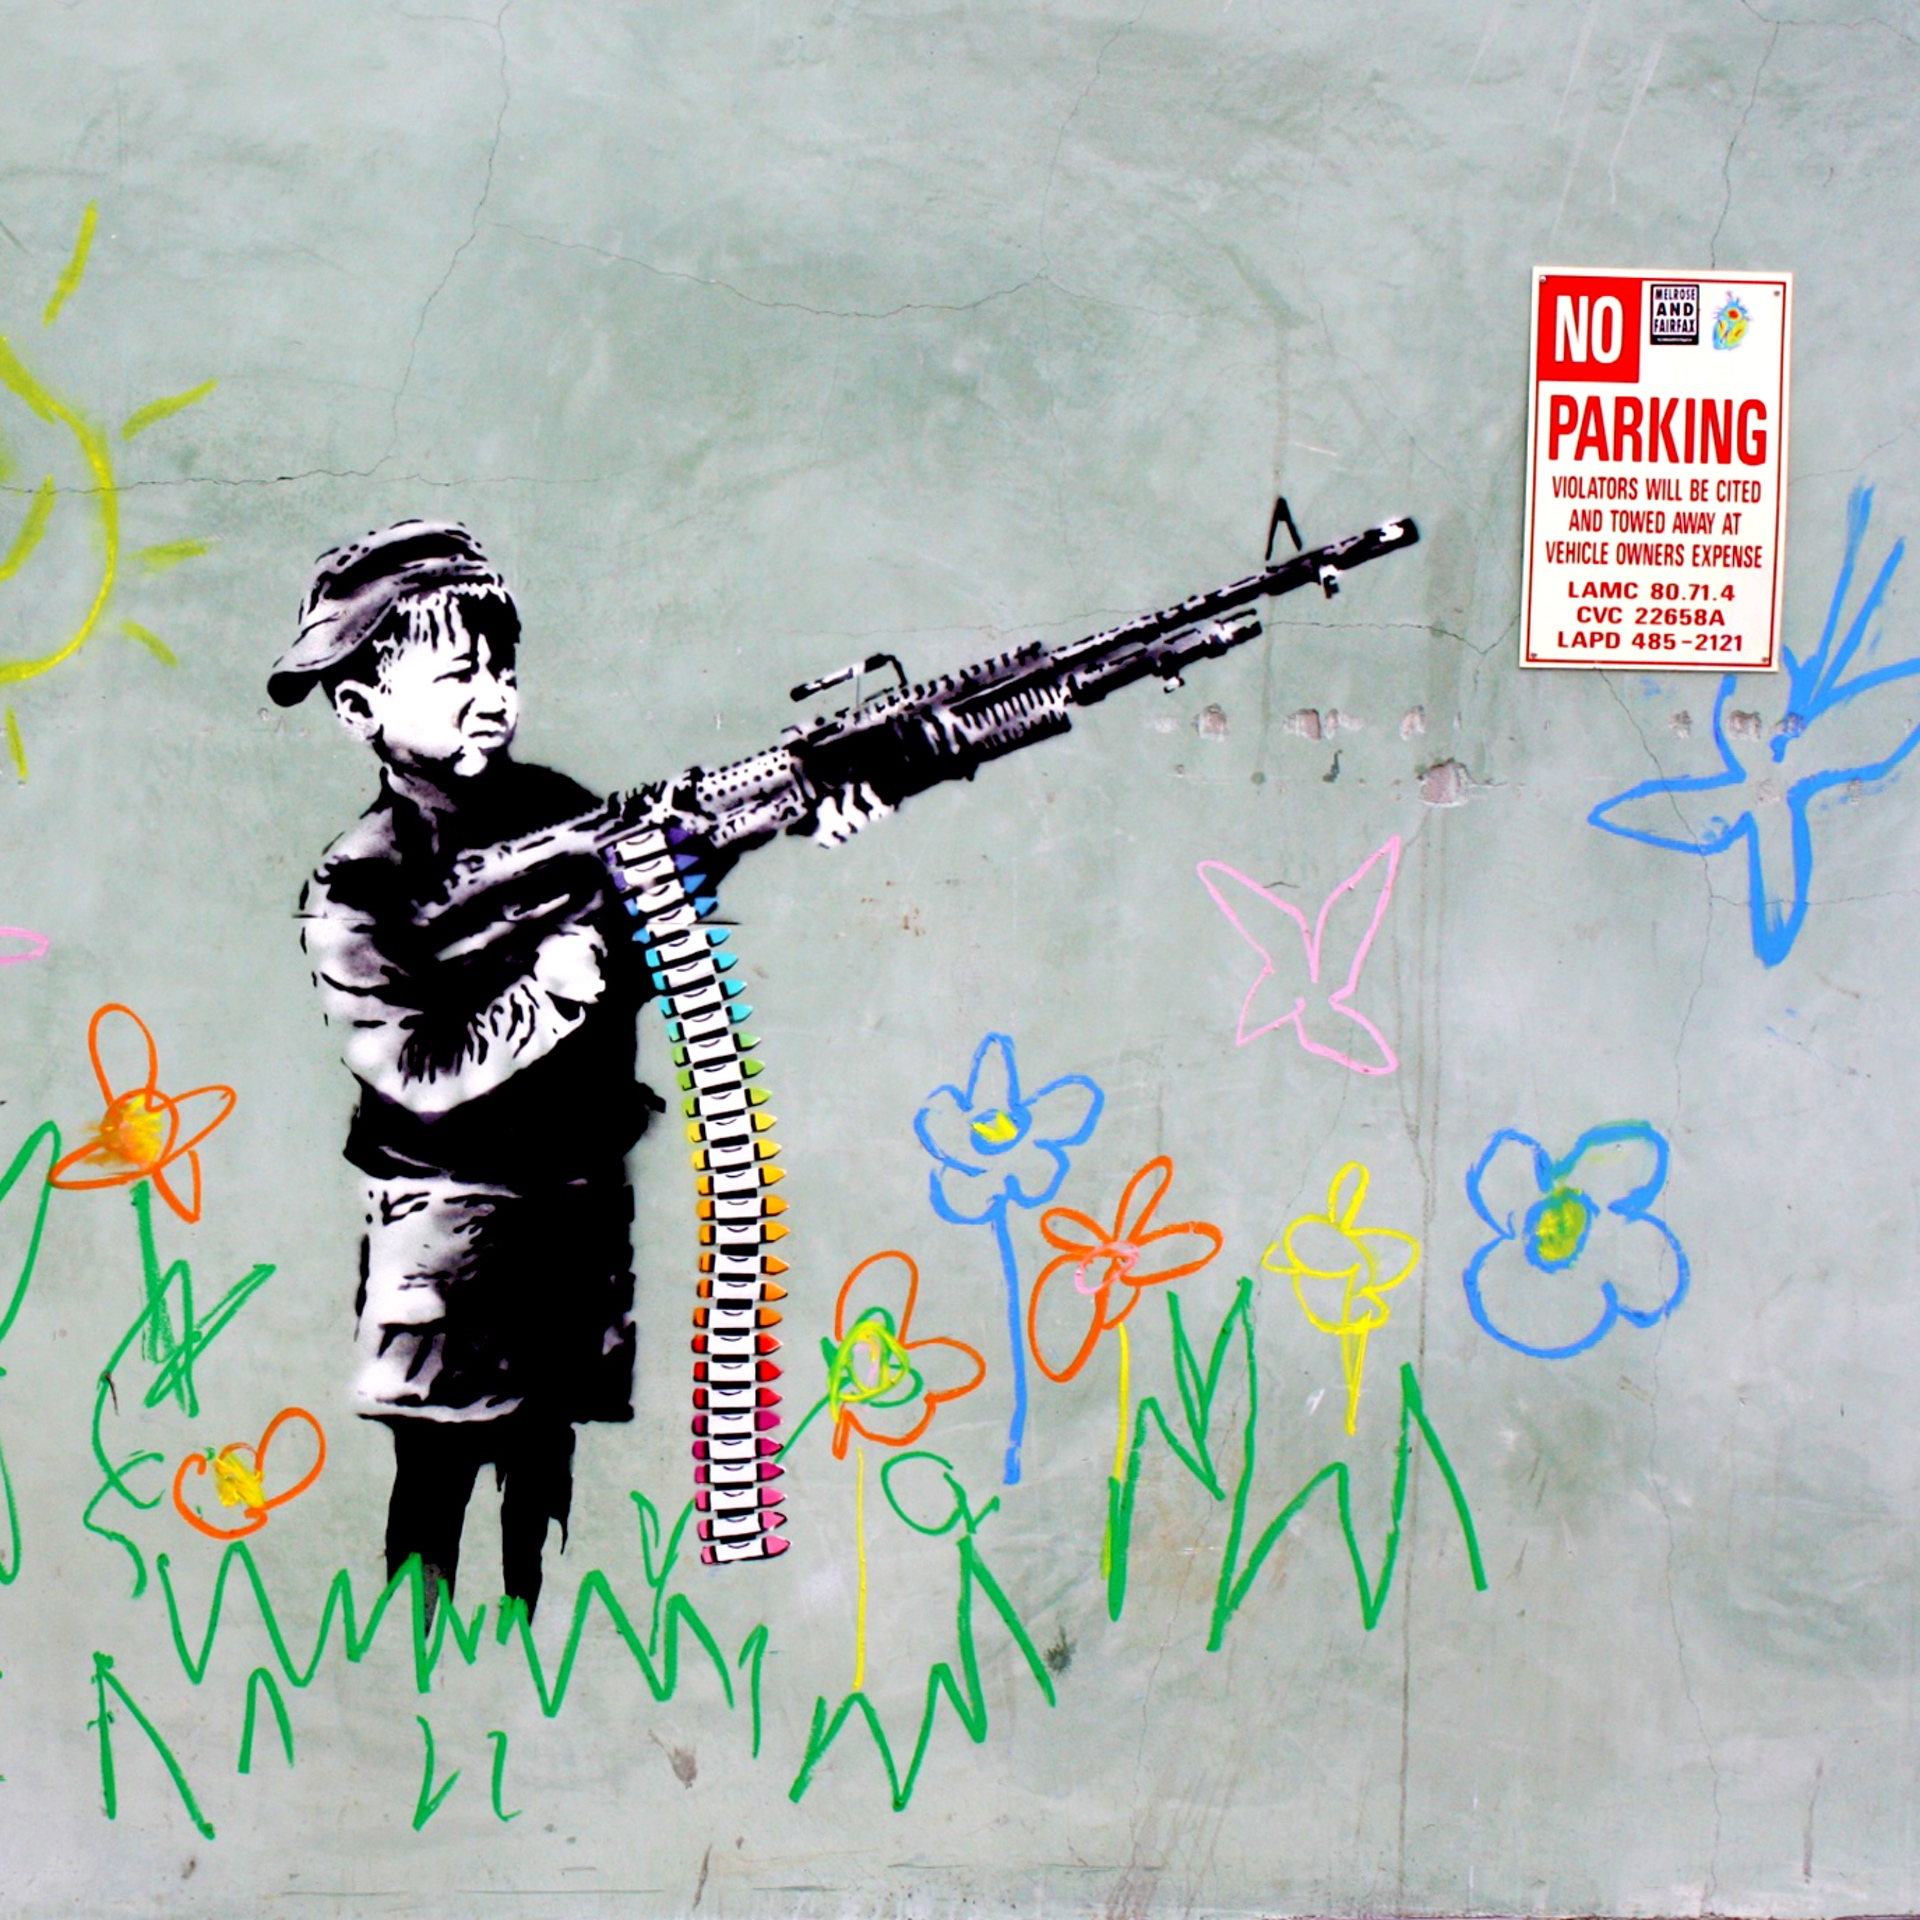 Boy with crayon gun (2011) by Banksy - Pako Campo